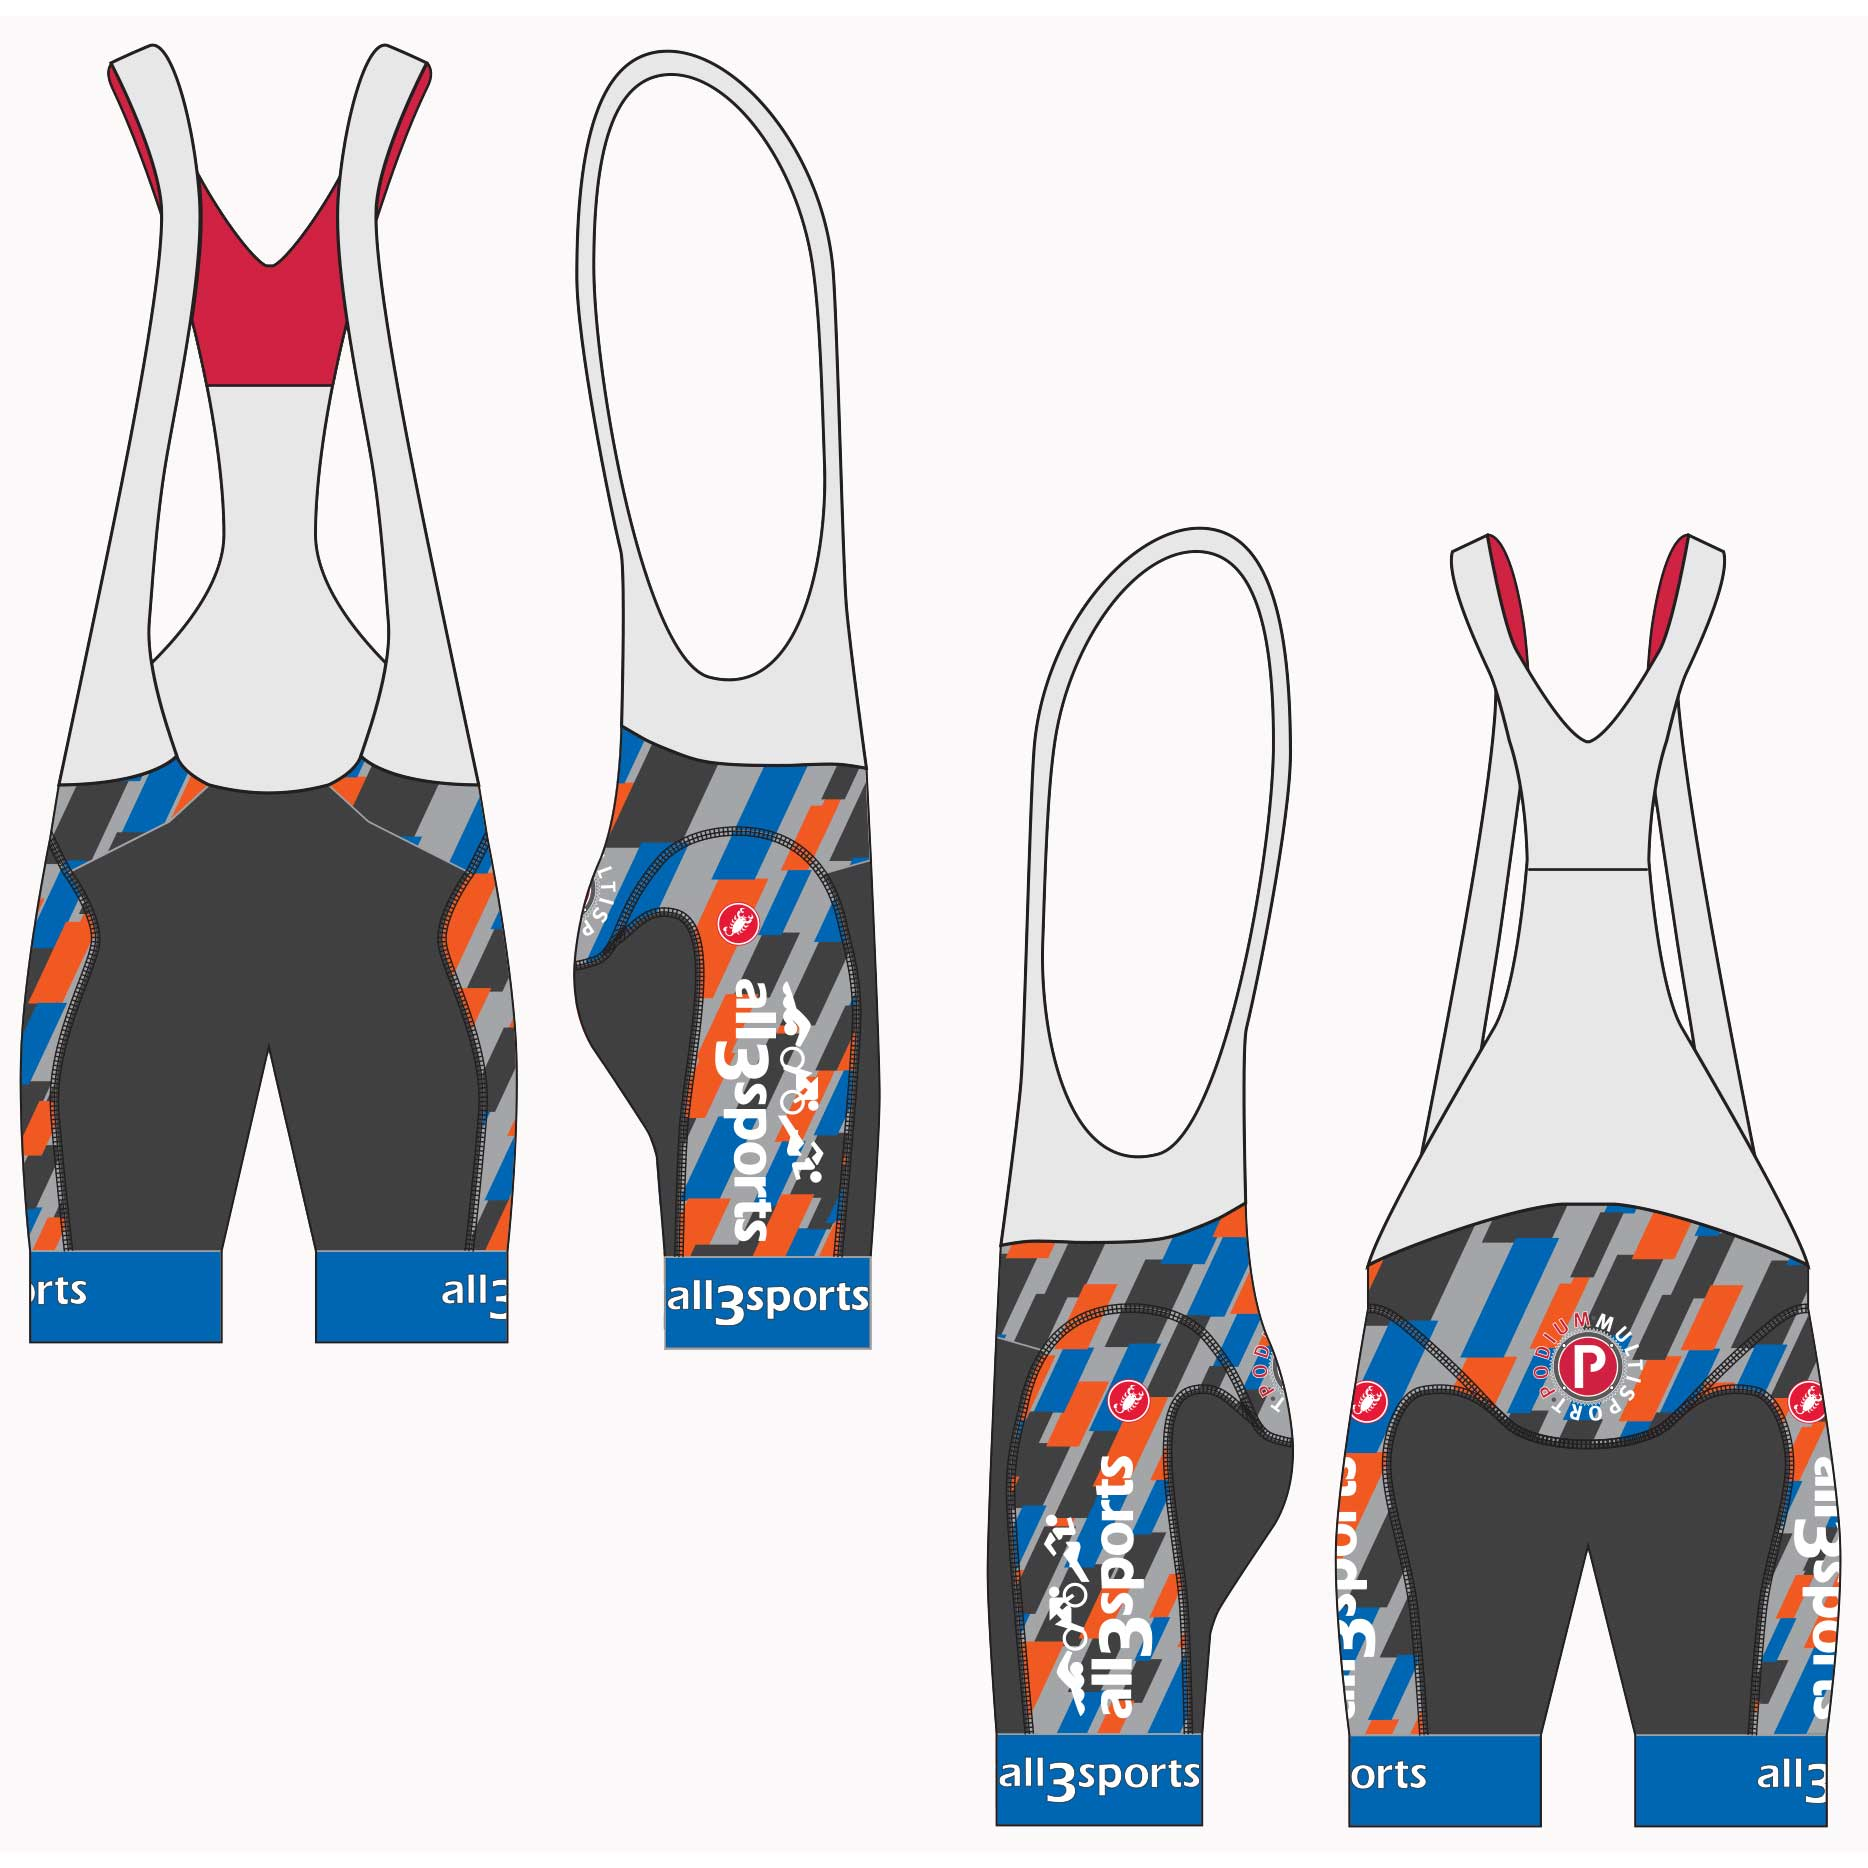 2019 all3sports.com Team Aero Race Bib Shorts